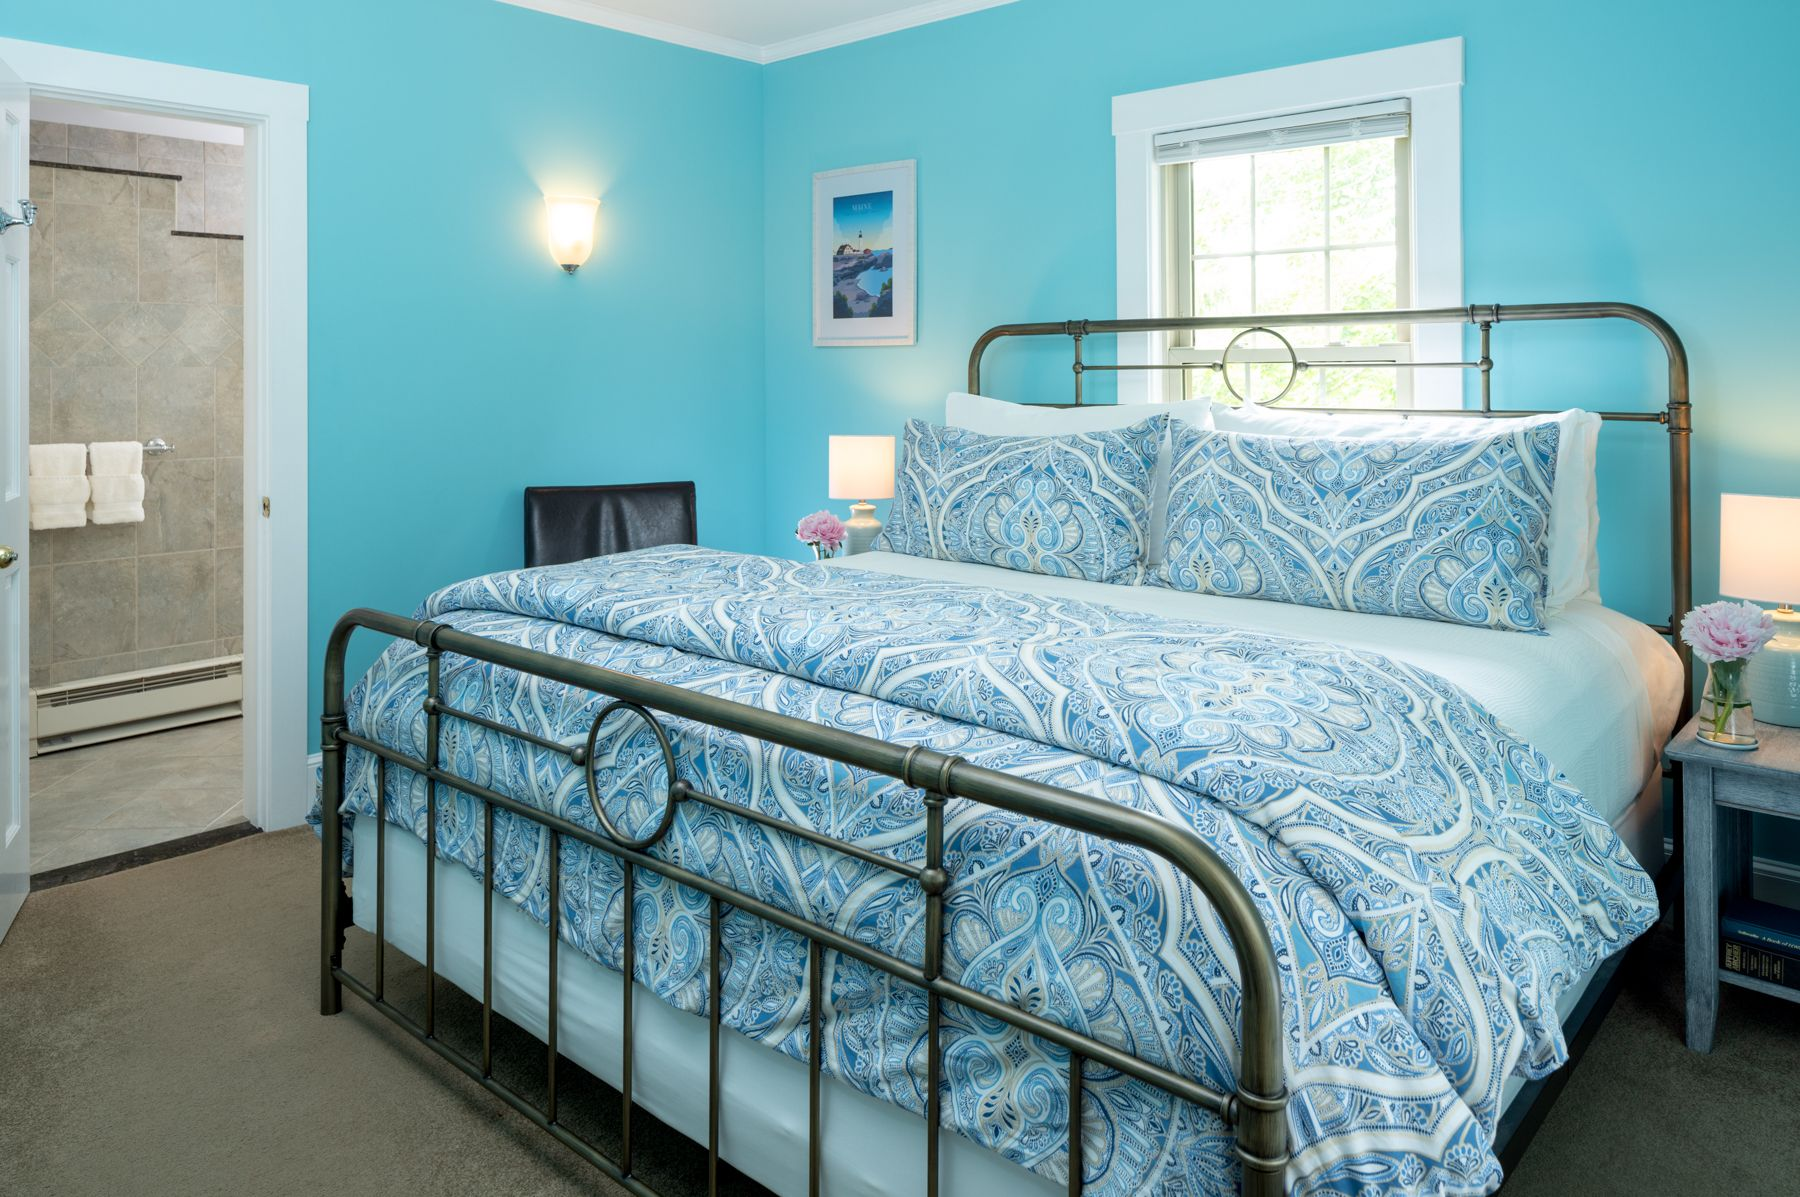 King bed in a room with light blue walls and a window overlooking a garden